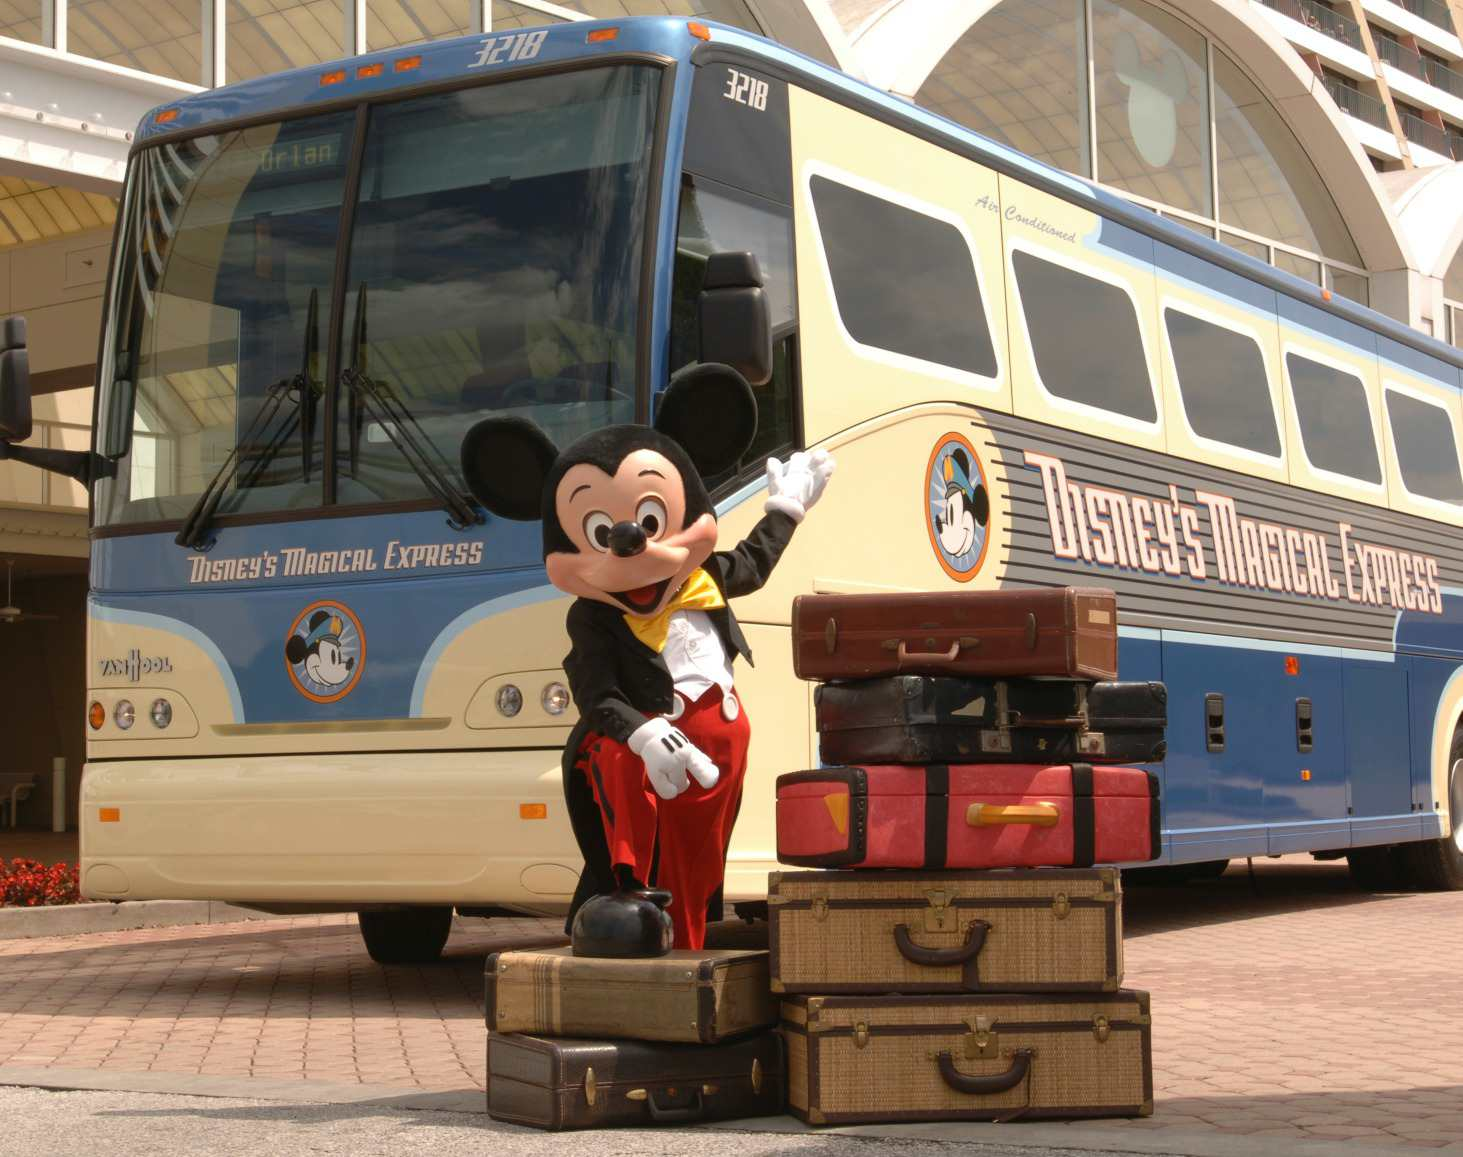 Magical Express bus for disney world